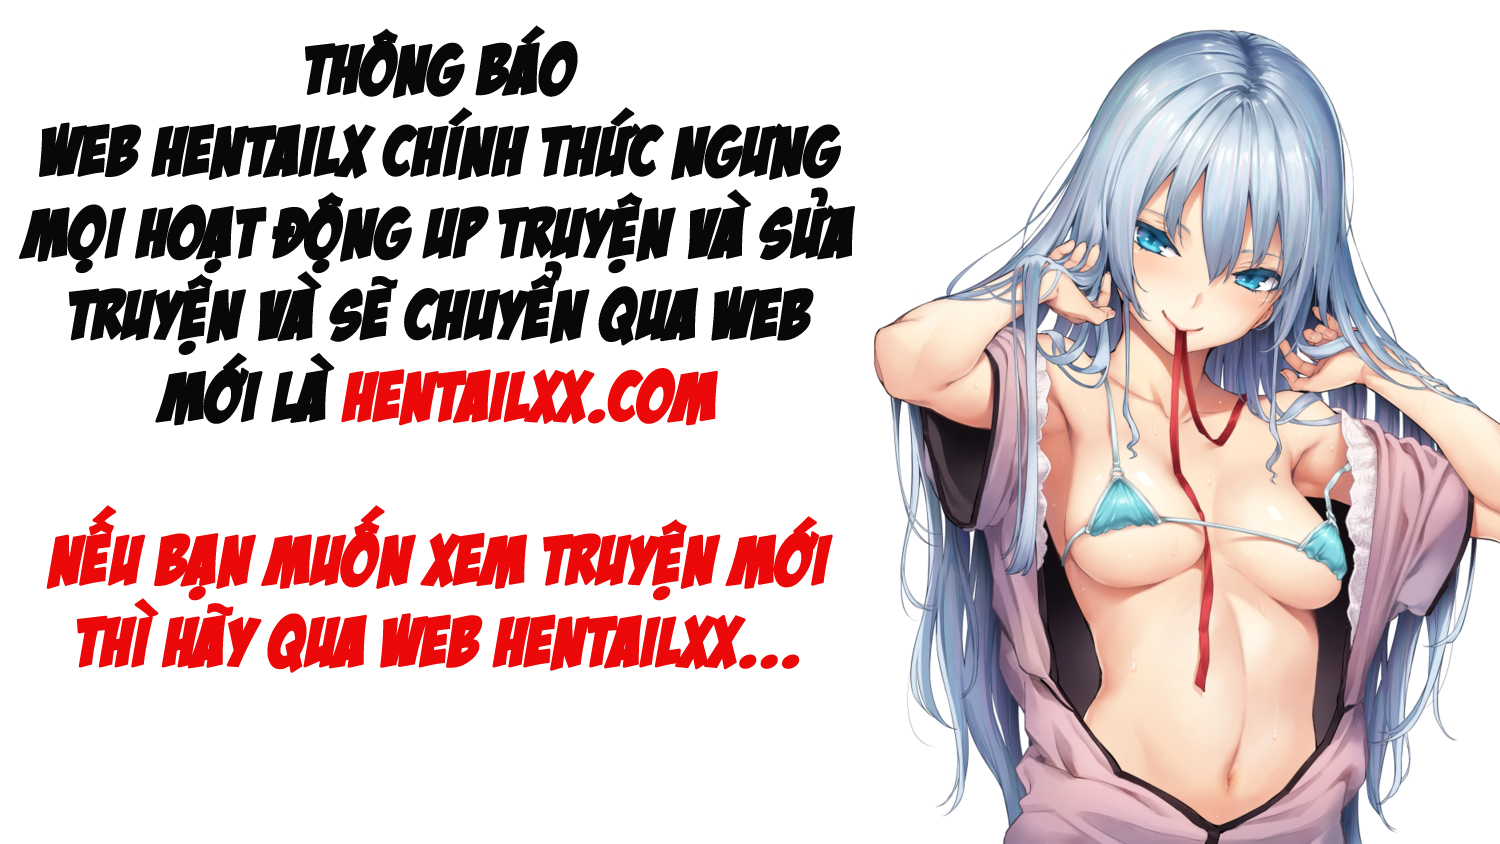 %252800B Amano-chan Can't Be Honest With Herself  - hentaicube.net - Truyện tranh hentai online